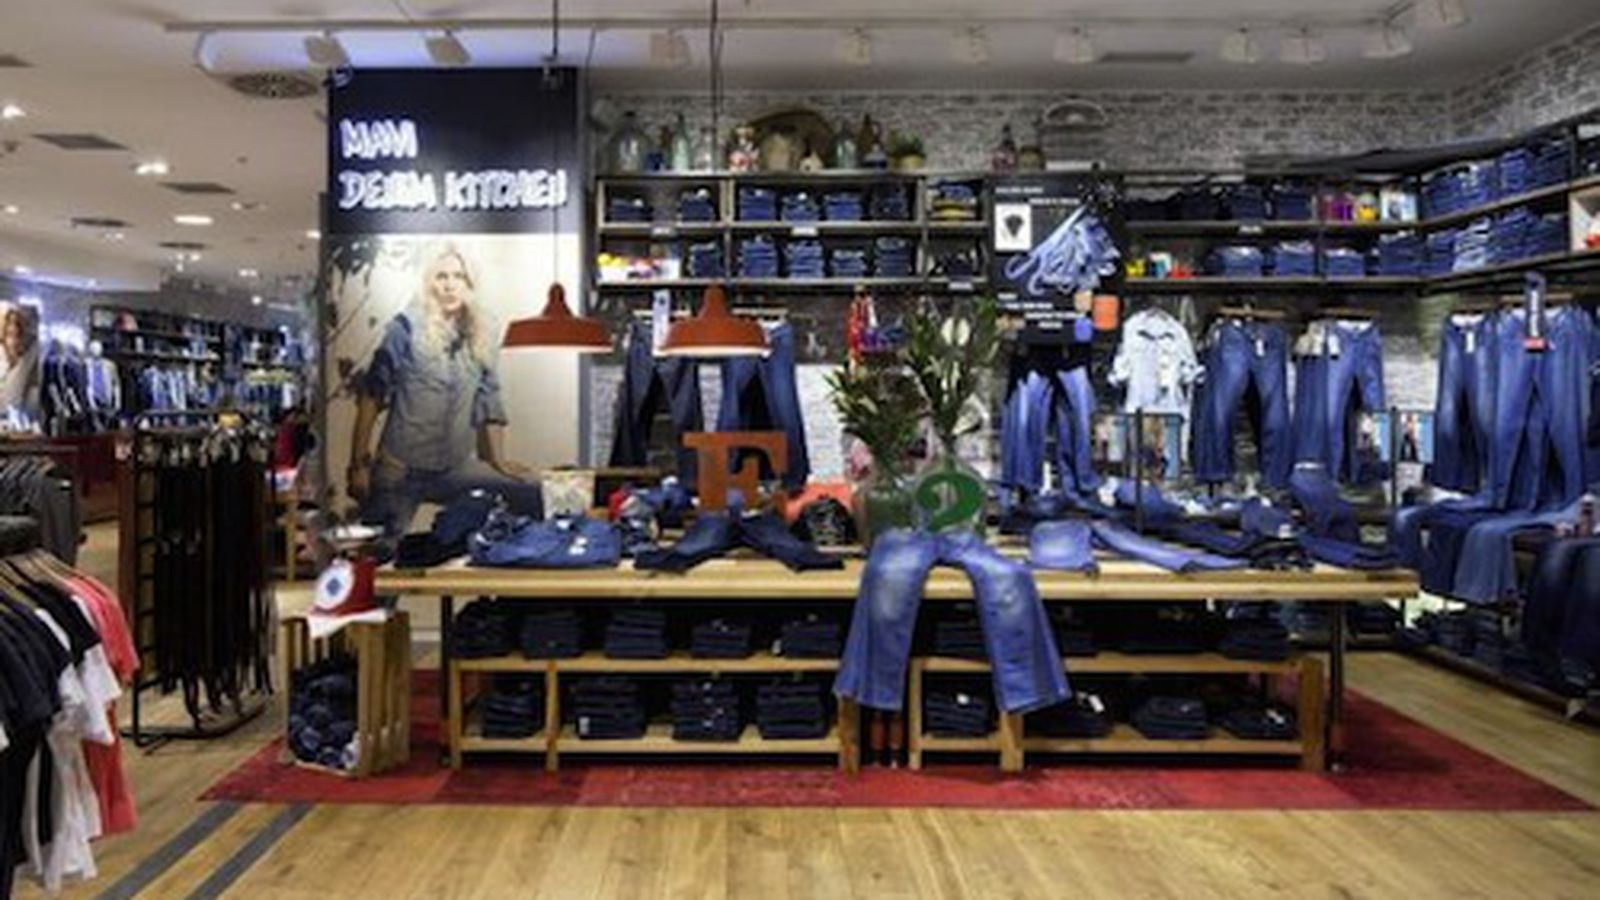 mavi jeans 39 park slope store will be a testing grounds. Black Bedroom Furniture Sets. Home Design Ideas